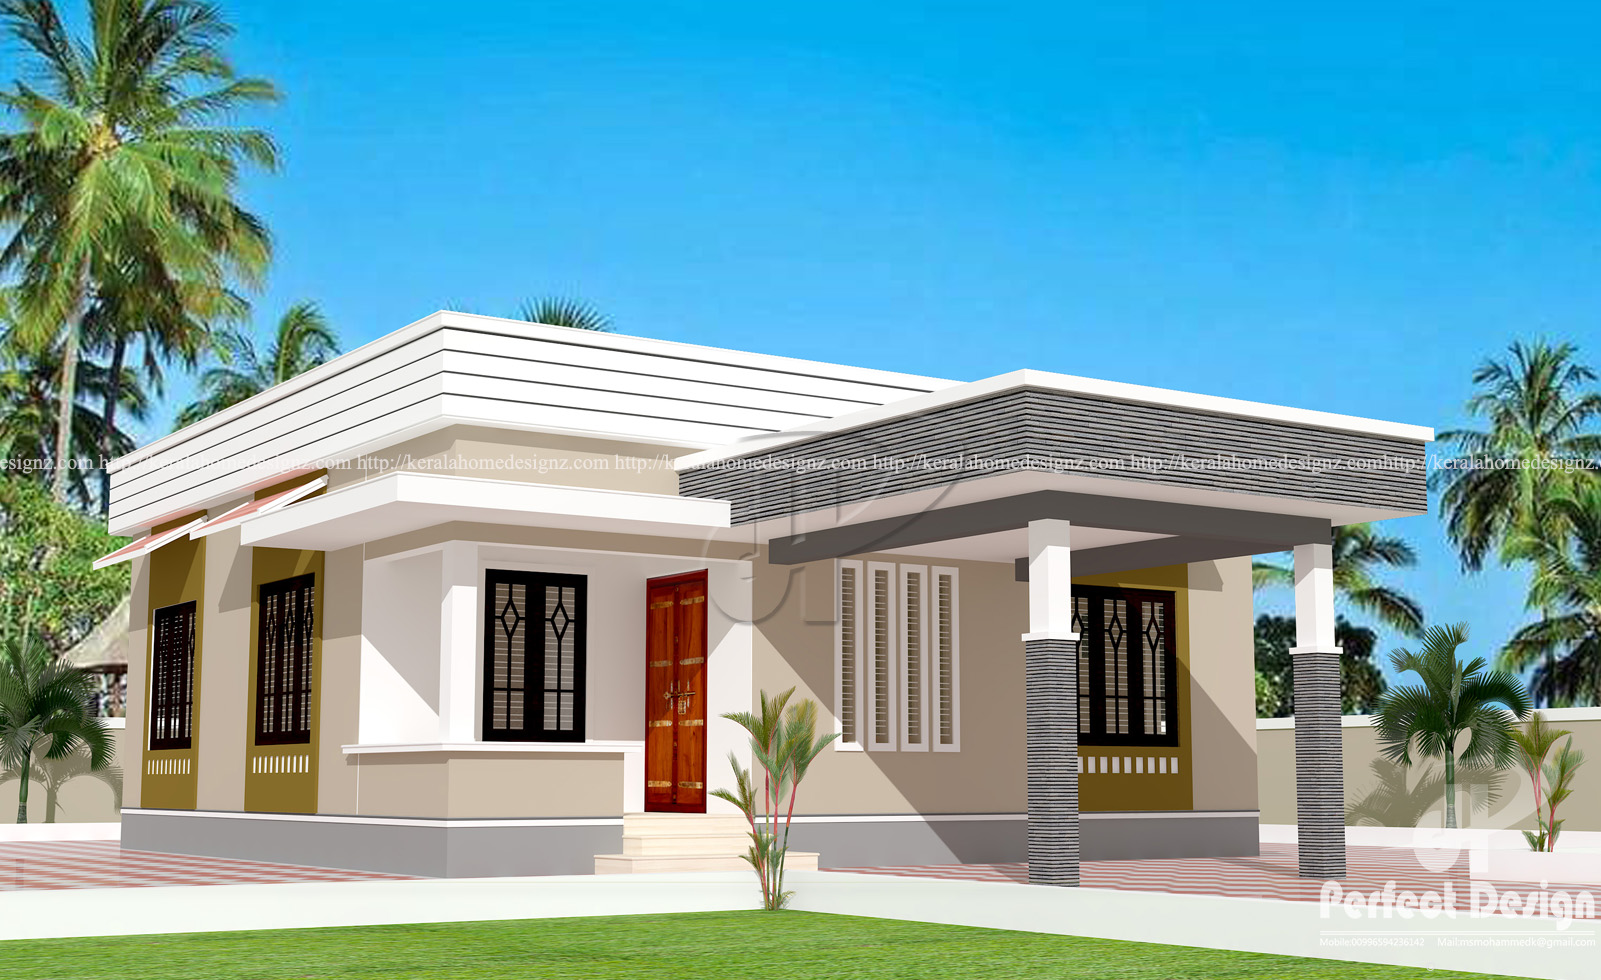 829 sq ft low cost home designs kerala home design for Www homedesign com